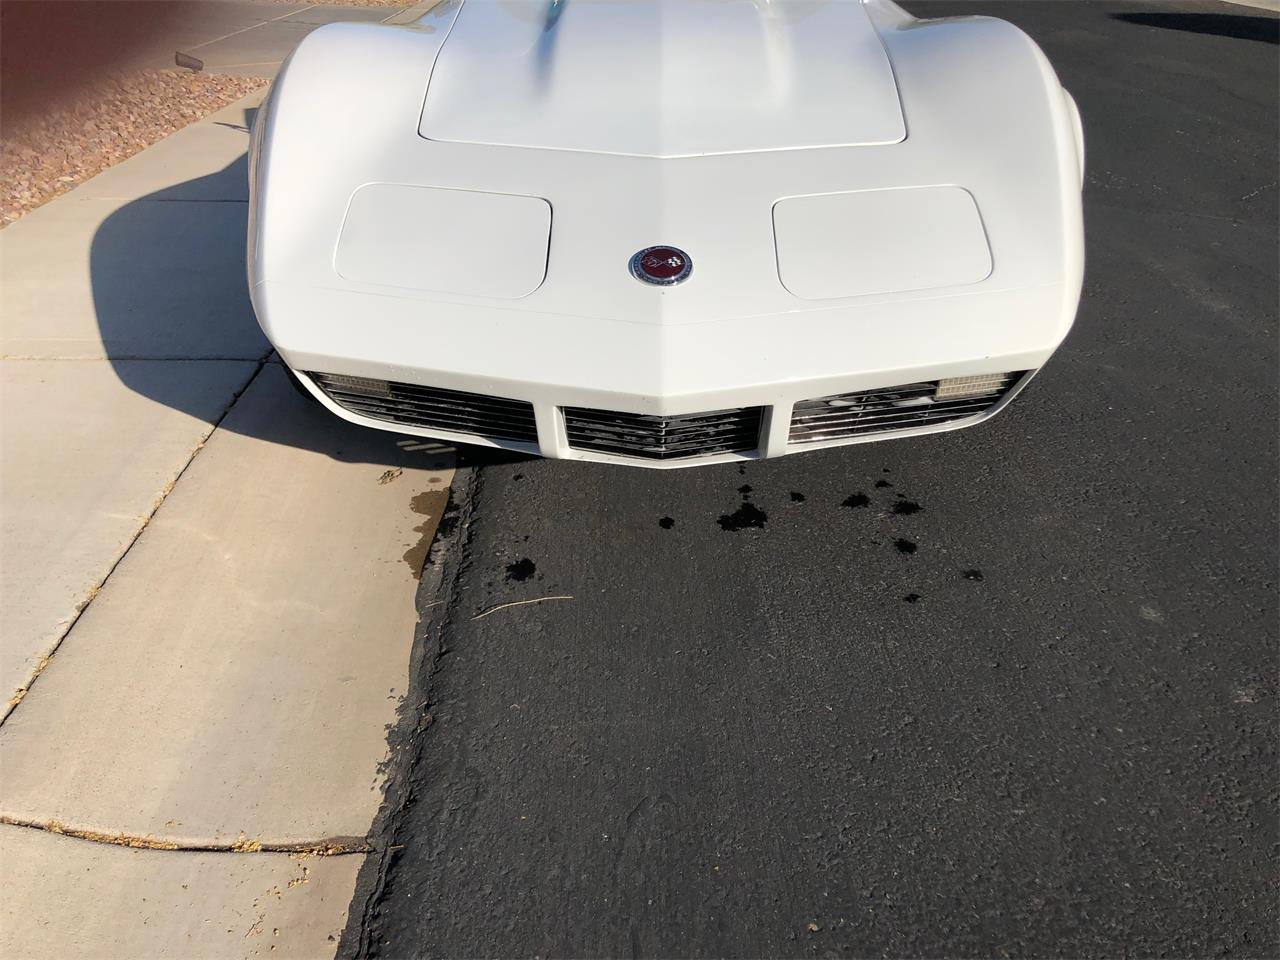 Large Picture of '73 Chevrolet Corvette located in Phoenix Arizona - $29,900.00 Offered by a Private Seller - Q67L